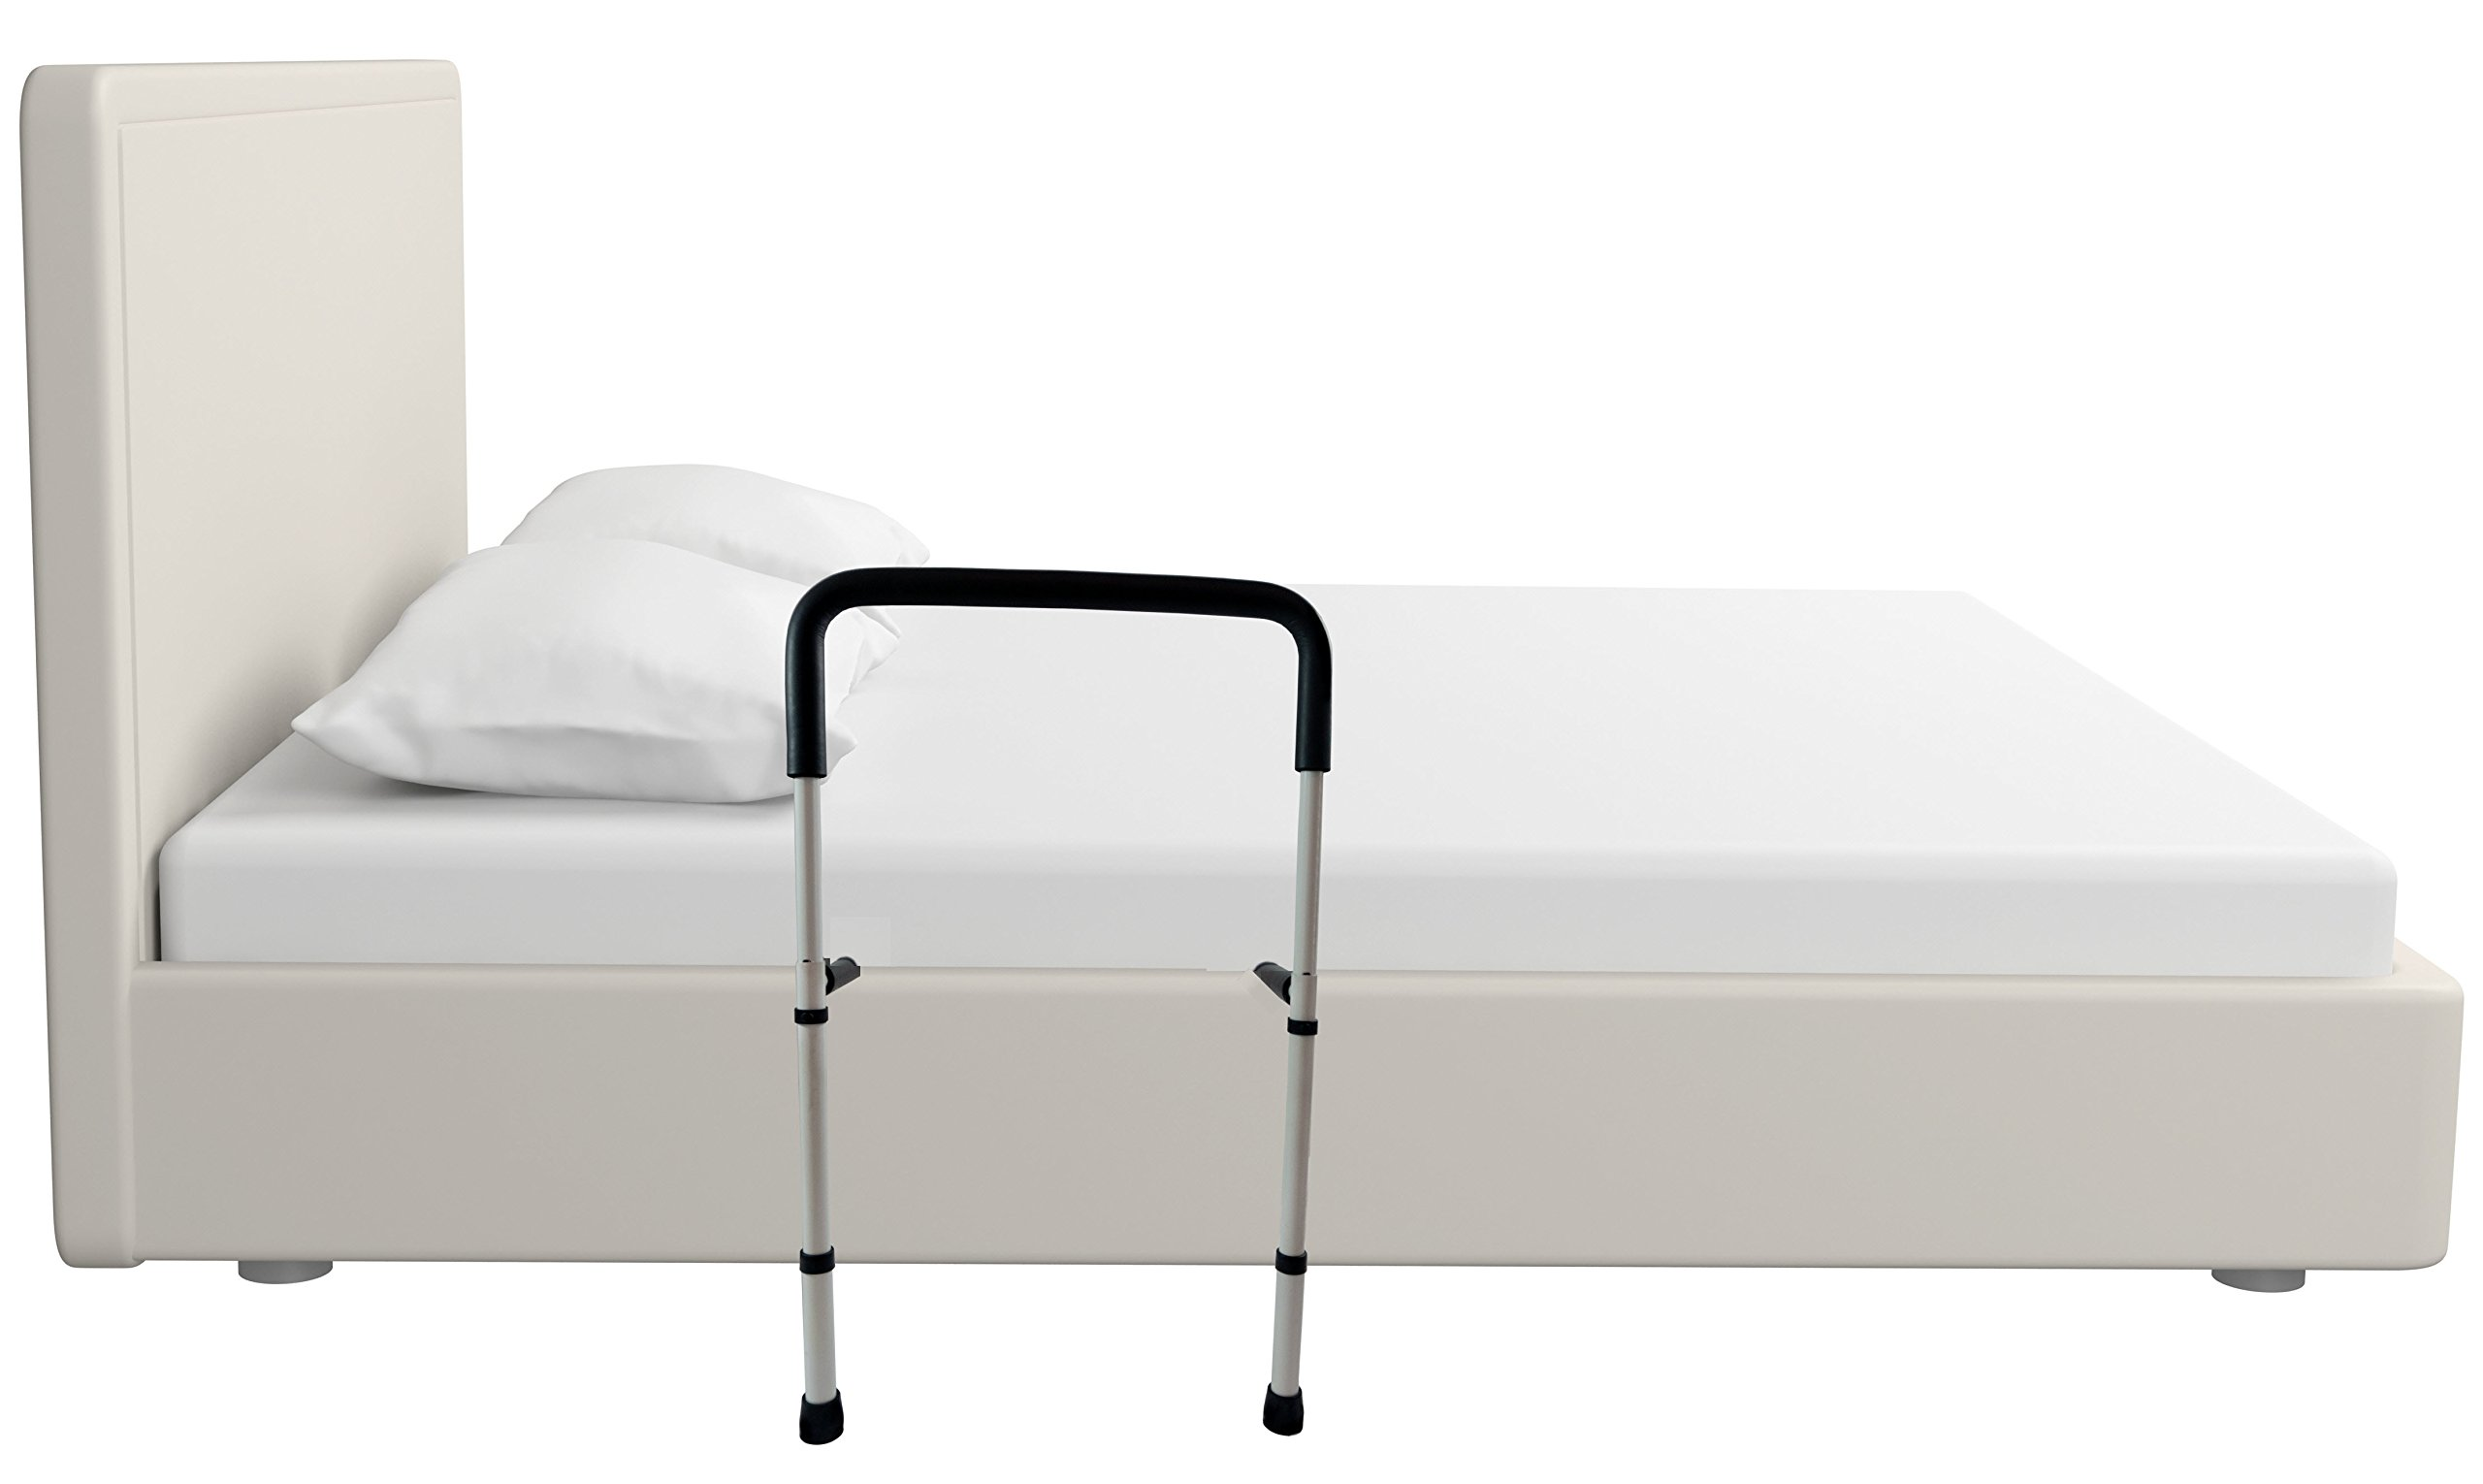 Bed Support Rail with Support Legs - Medical Bed Support Assist Grab Bar for Disabled, Elderly, Adults, and Children